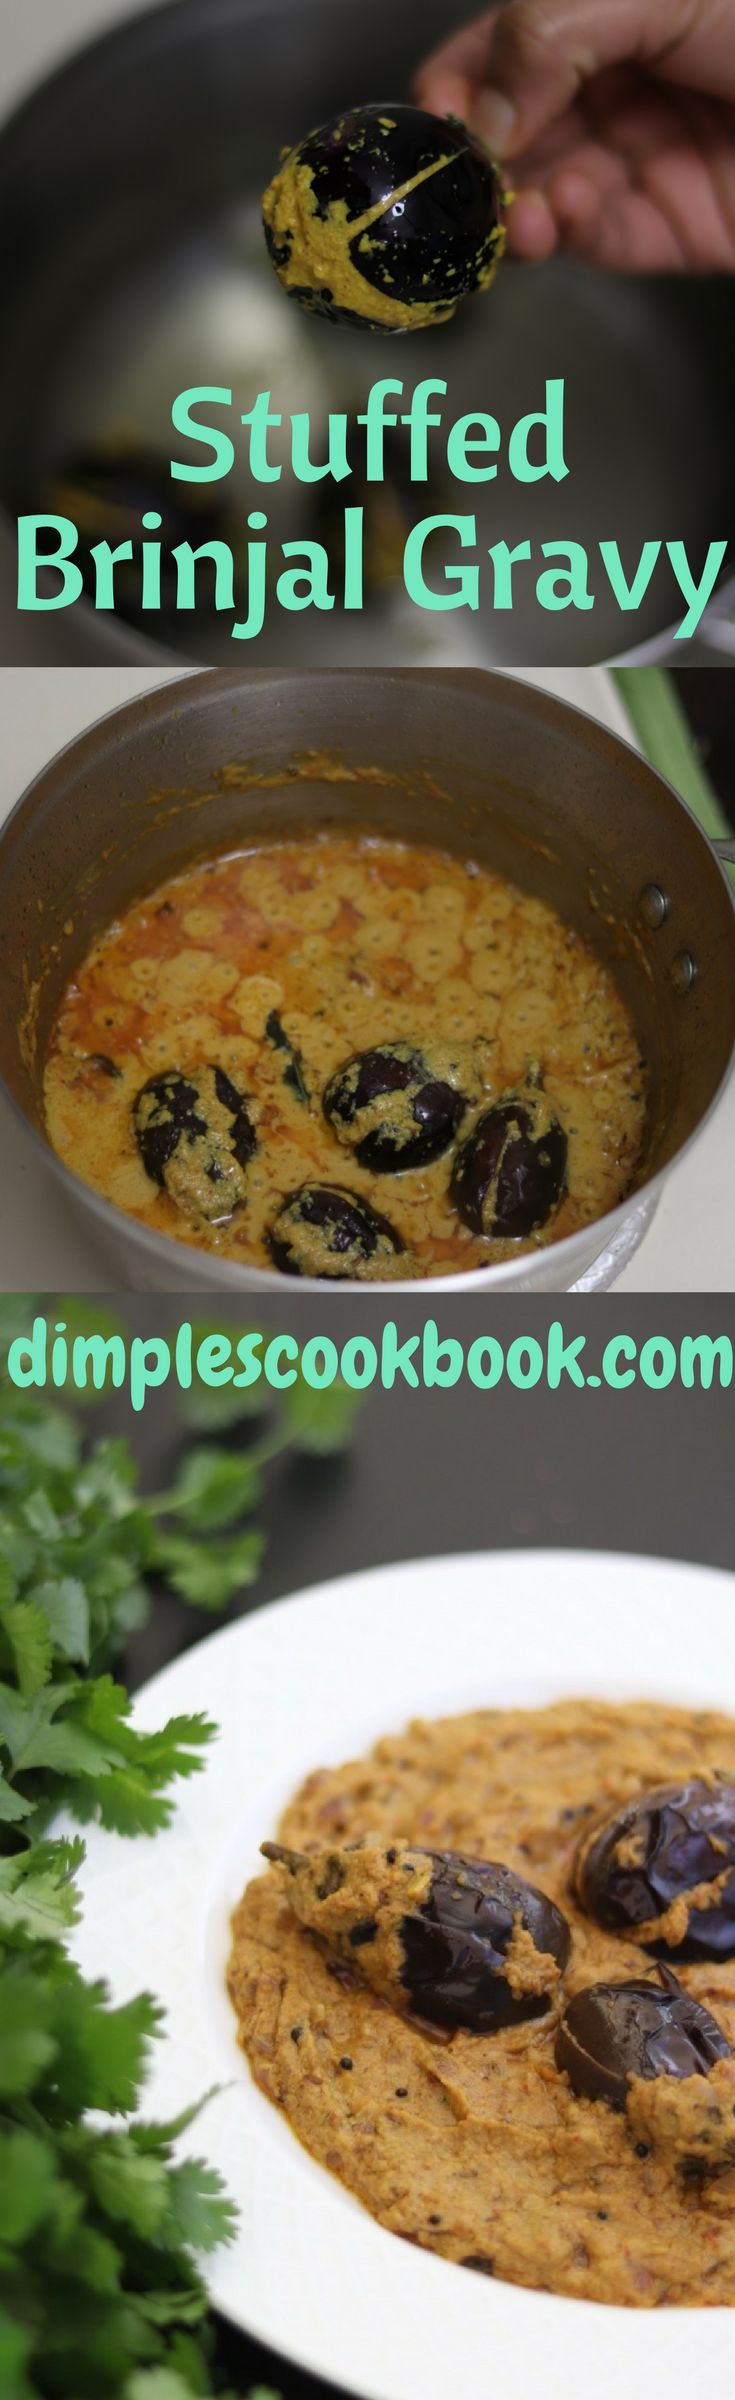 Ennai kathirikkai or Stuffed Brinjal Gravy is a delicious recipe which you can serve with chapati / Naan / Biryani or pulao.